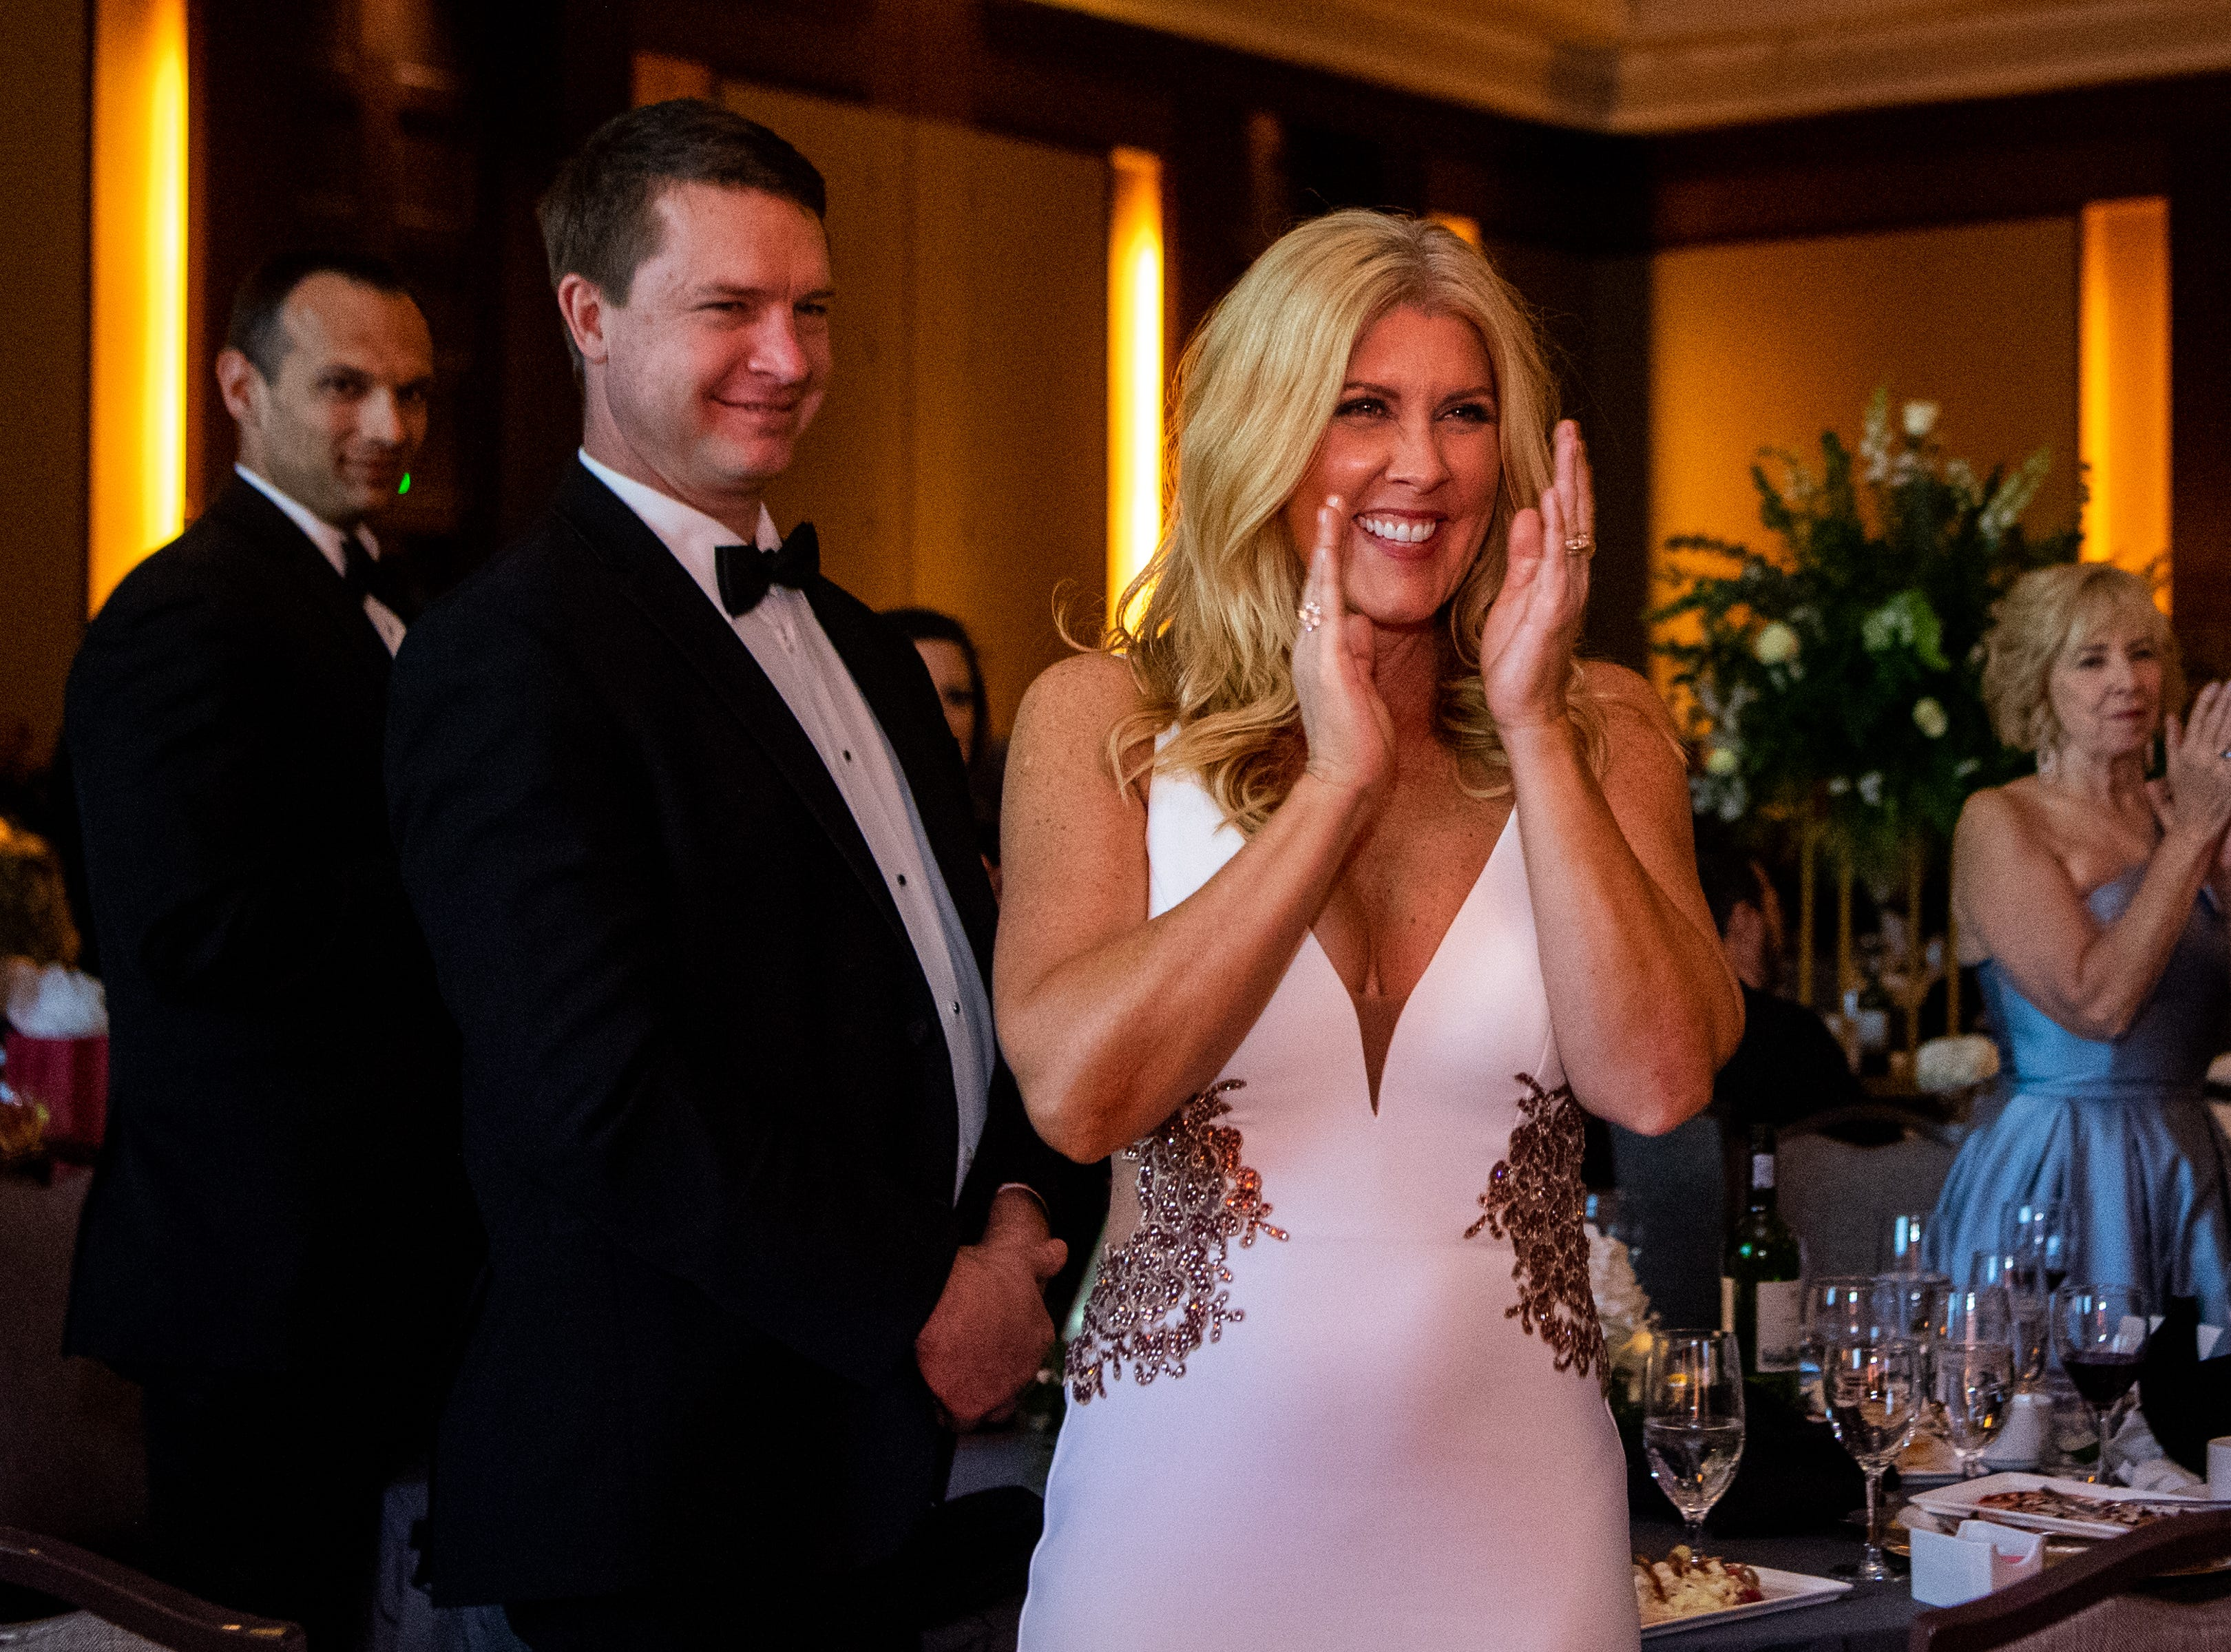 People applaud for Dr. Jeannie Beauchamp after being given the Wendell H. Gilbert Award during Austin Peay State University's annual Candlelight Ball at the Omni Nashville Hotel Saturday, March 16, 2019, in Nashville, Tenn.